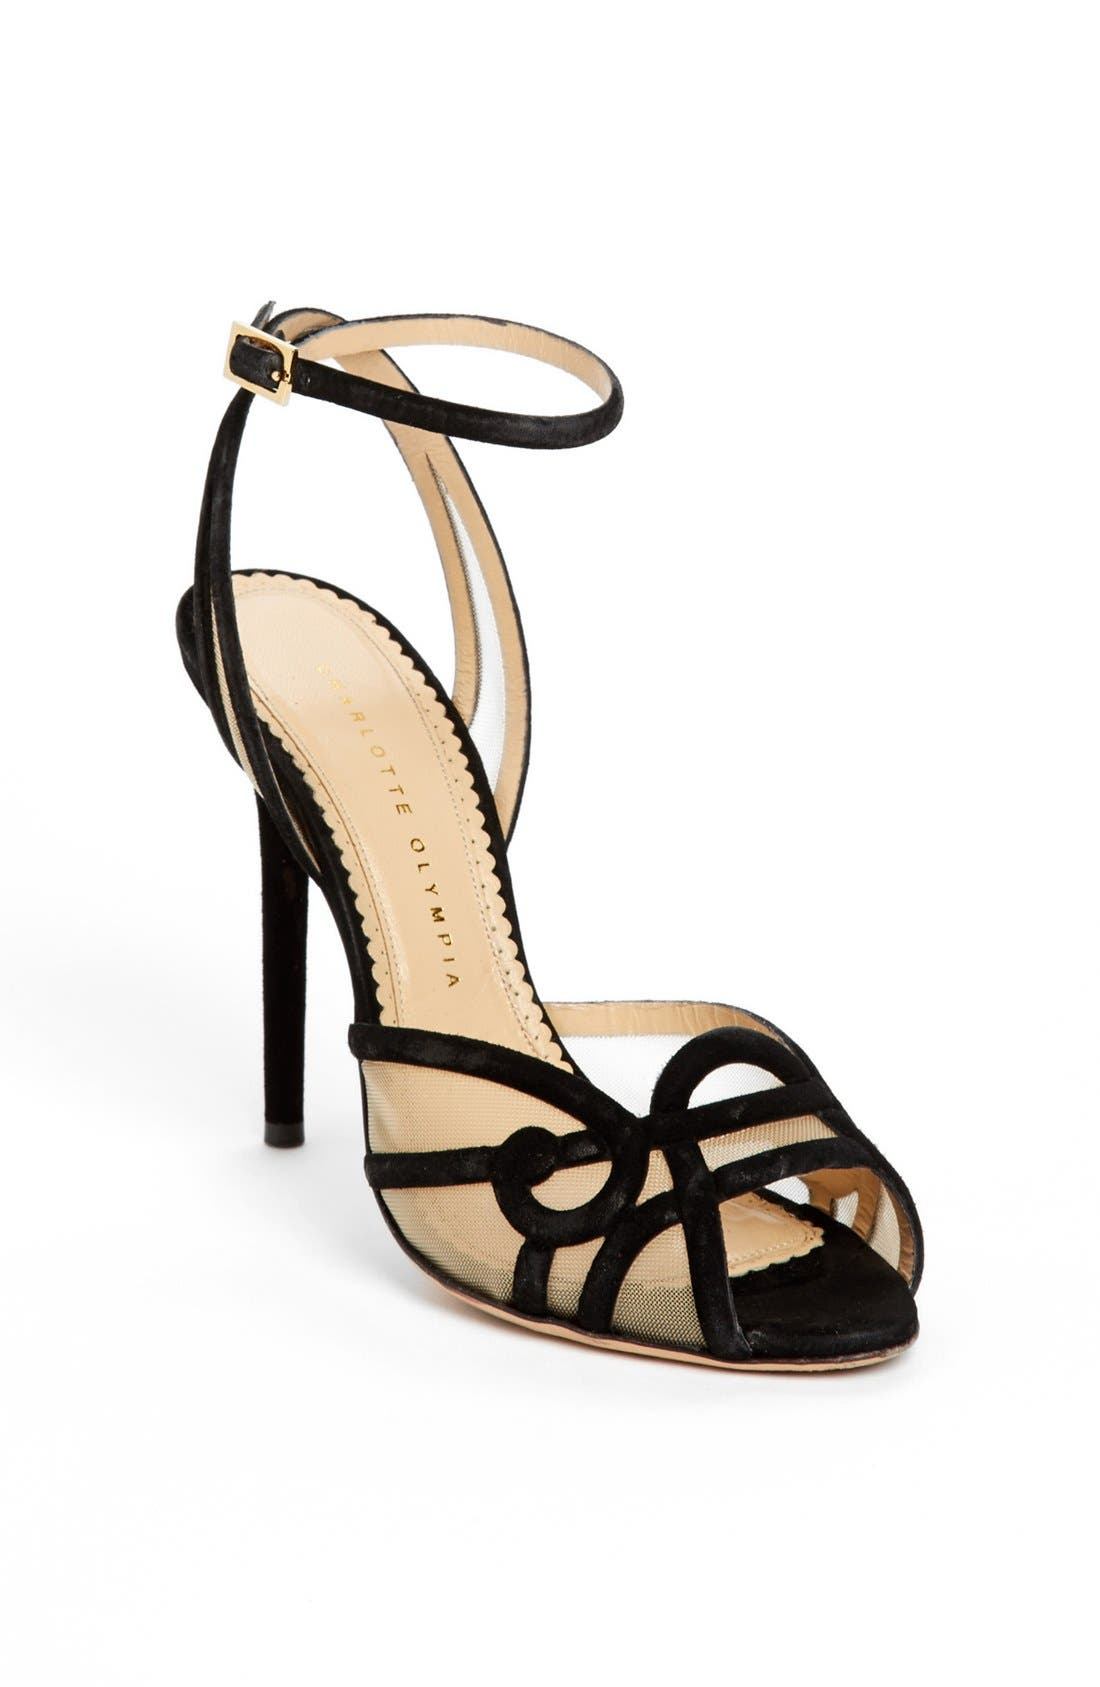 Alternate Image 1 Selected - Charlotte Olympia 'Sugar' High Strap Sandal